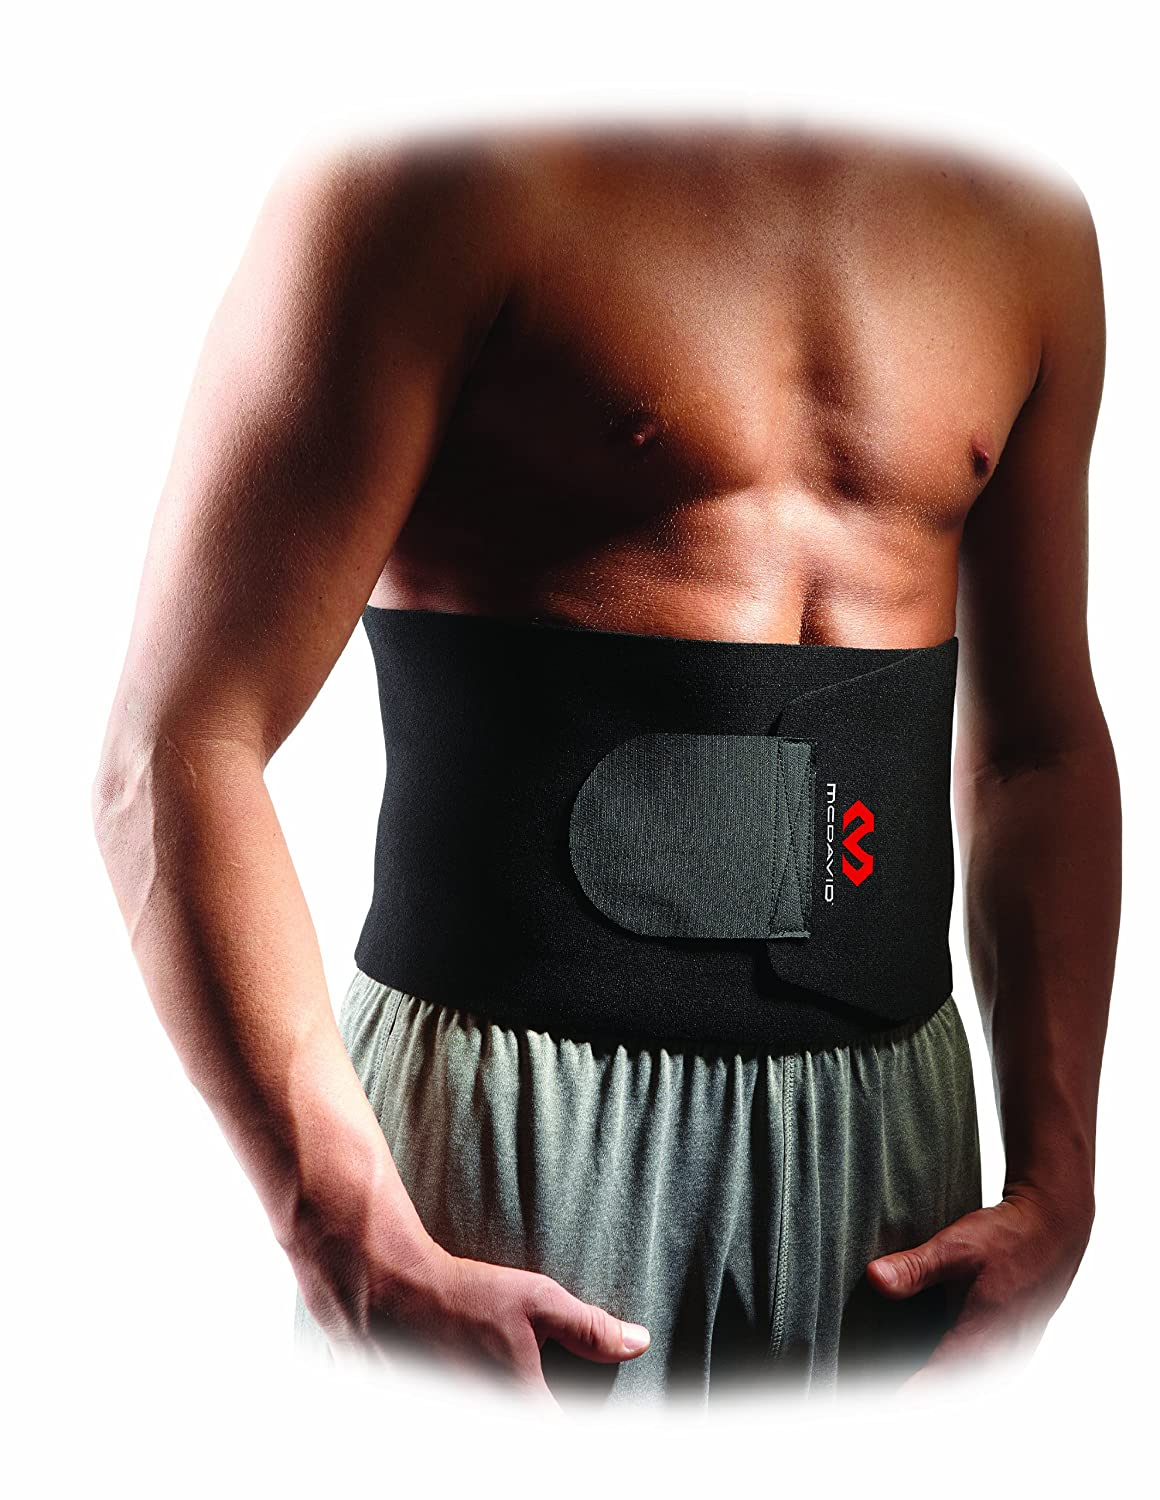 Top 5 Best Waist Trimmers Reviews in 2020 5